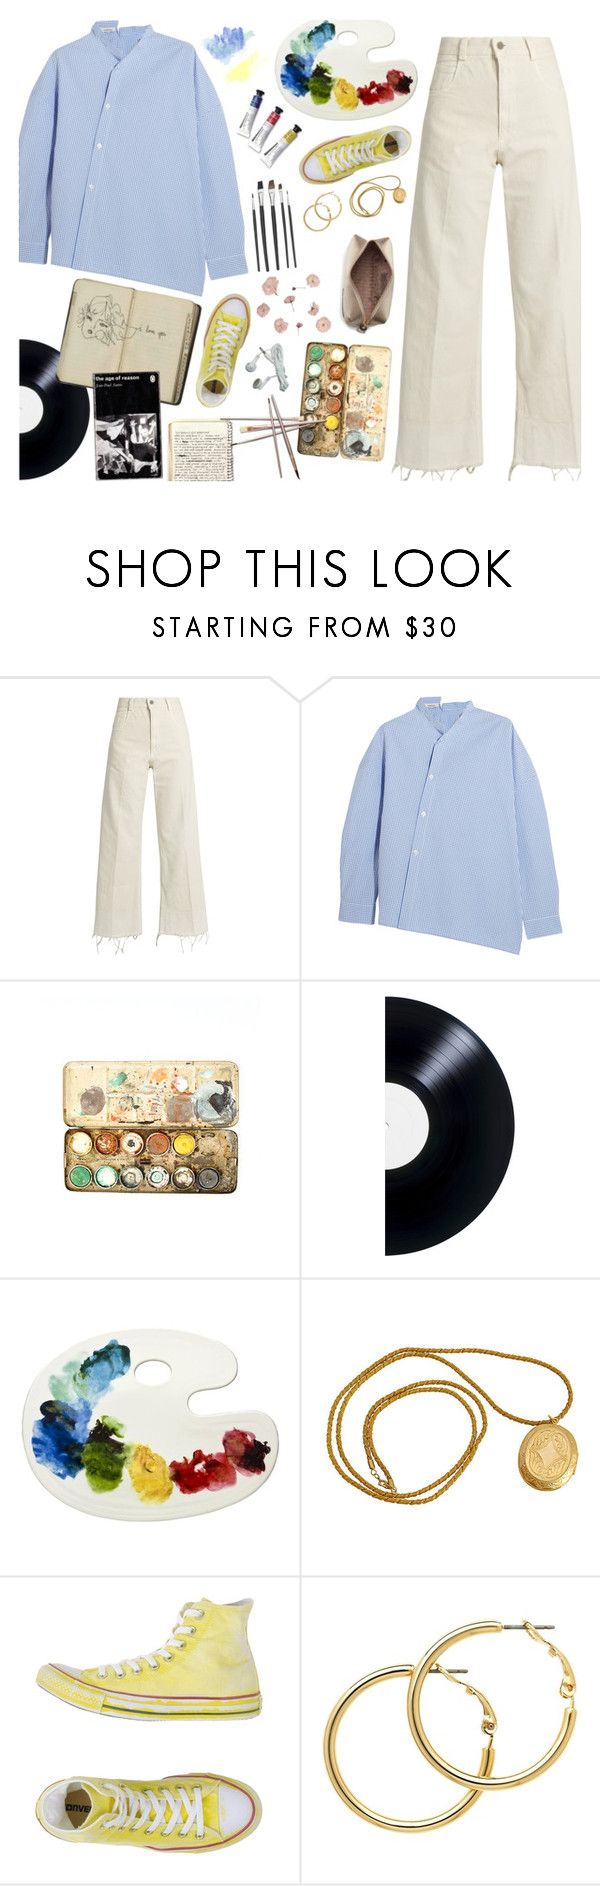 """""""The Artist"""" by amalieknygberg ❤ liked on Polyvore featuring Rachel Comey, Totême, Converse, Melissa Odabash and Anya Hindmarch"""